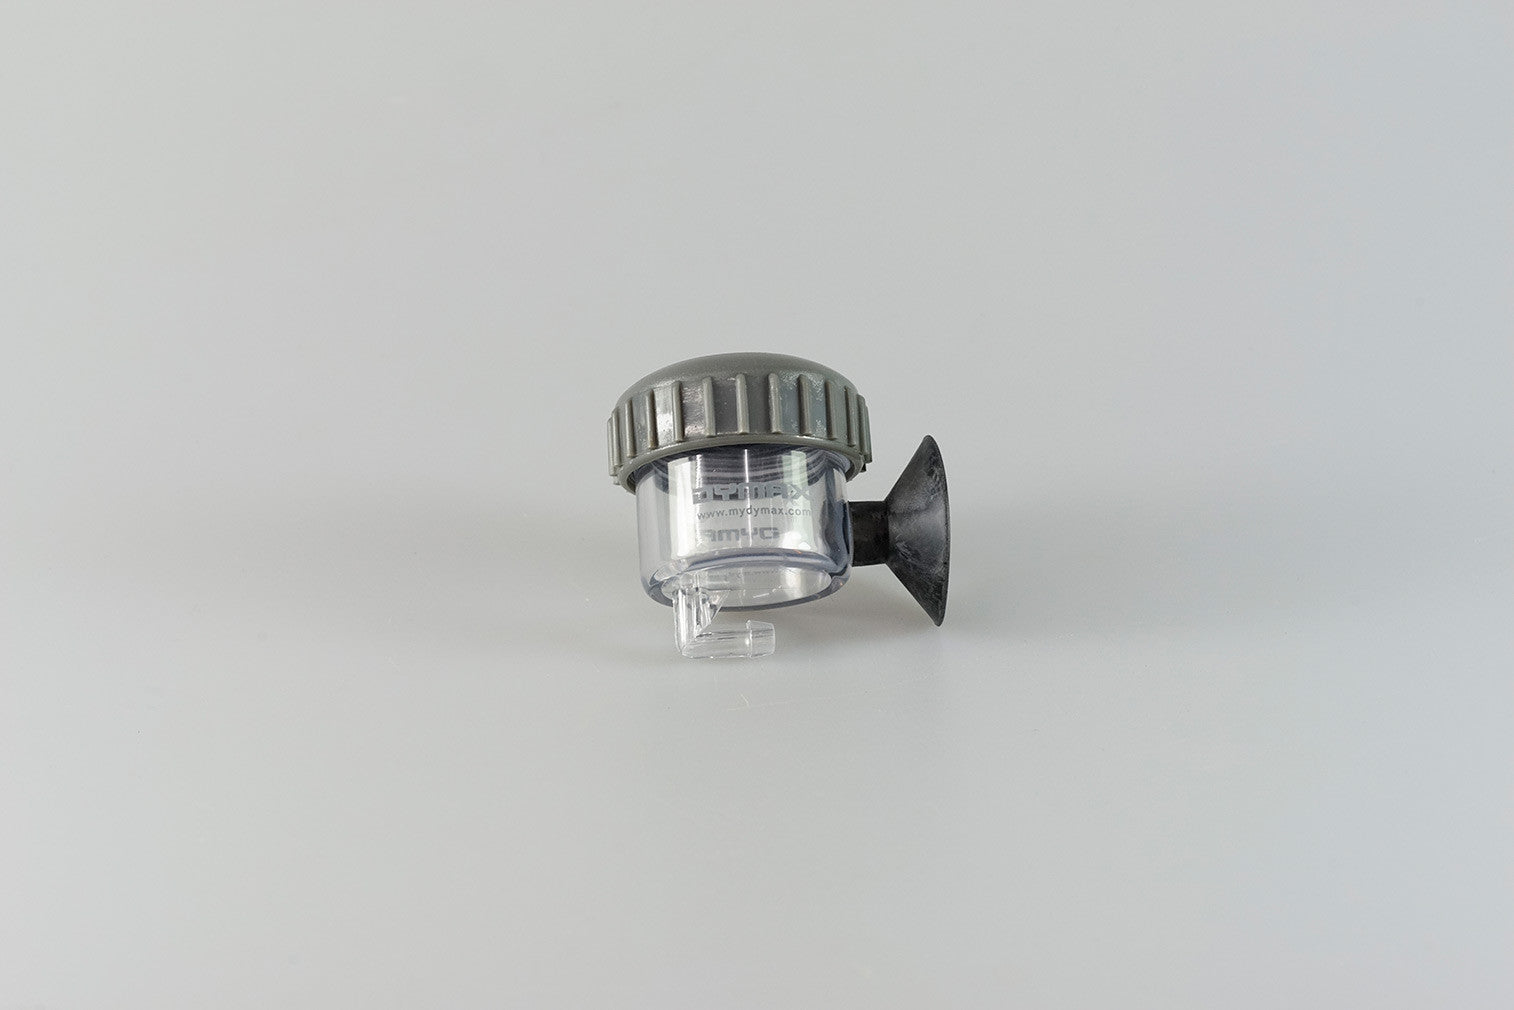 Dymax CO2 Atomizer